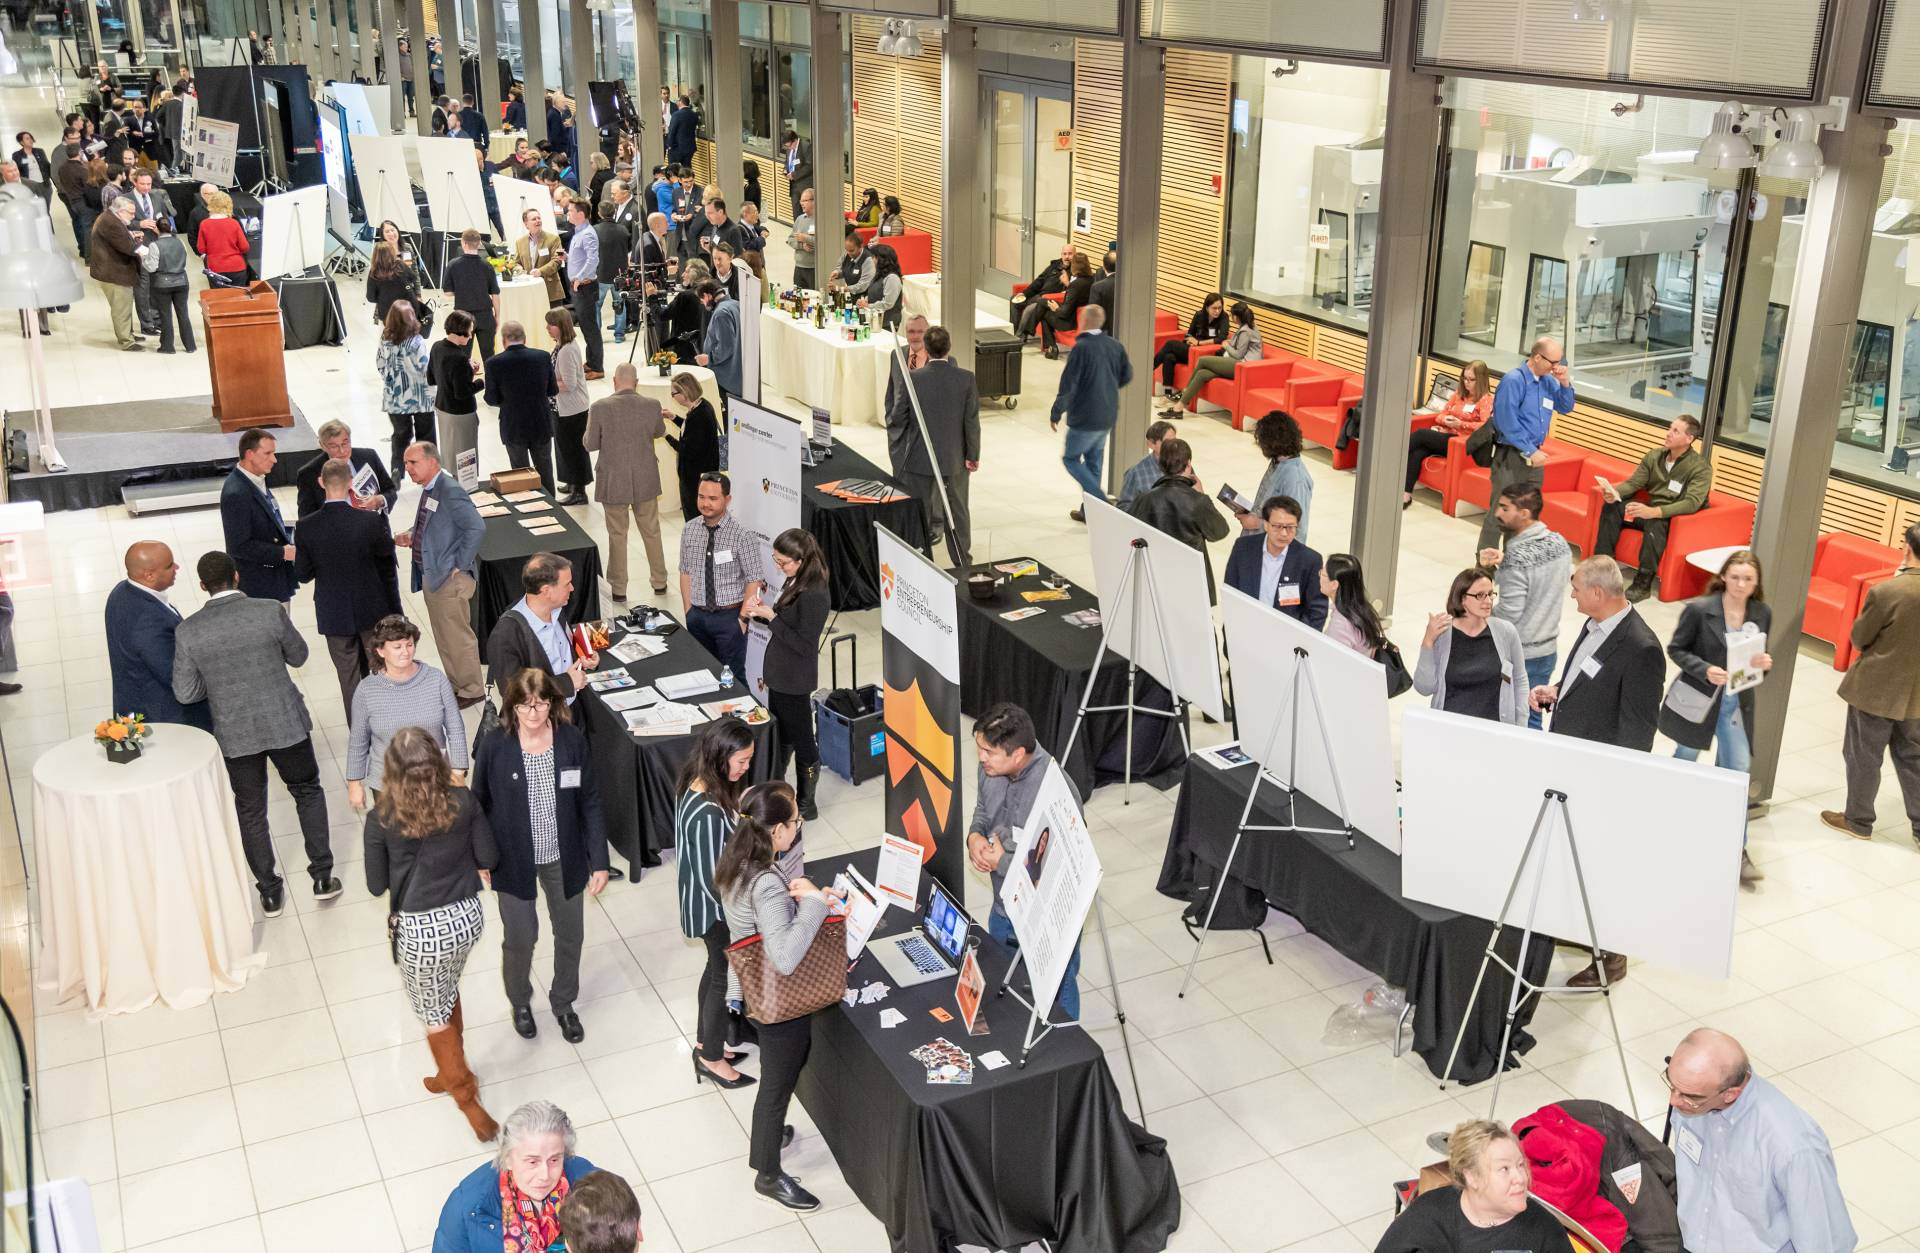 Guests and researchers mingle at CPI event